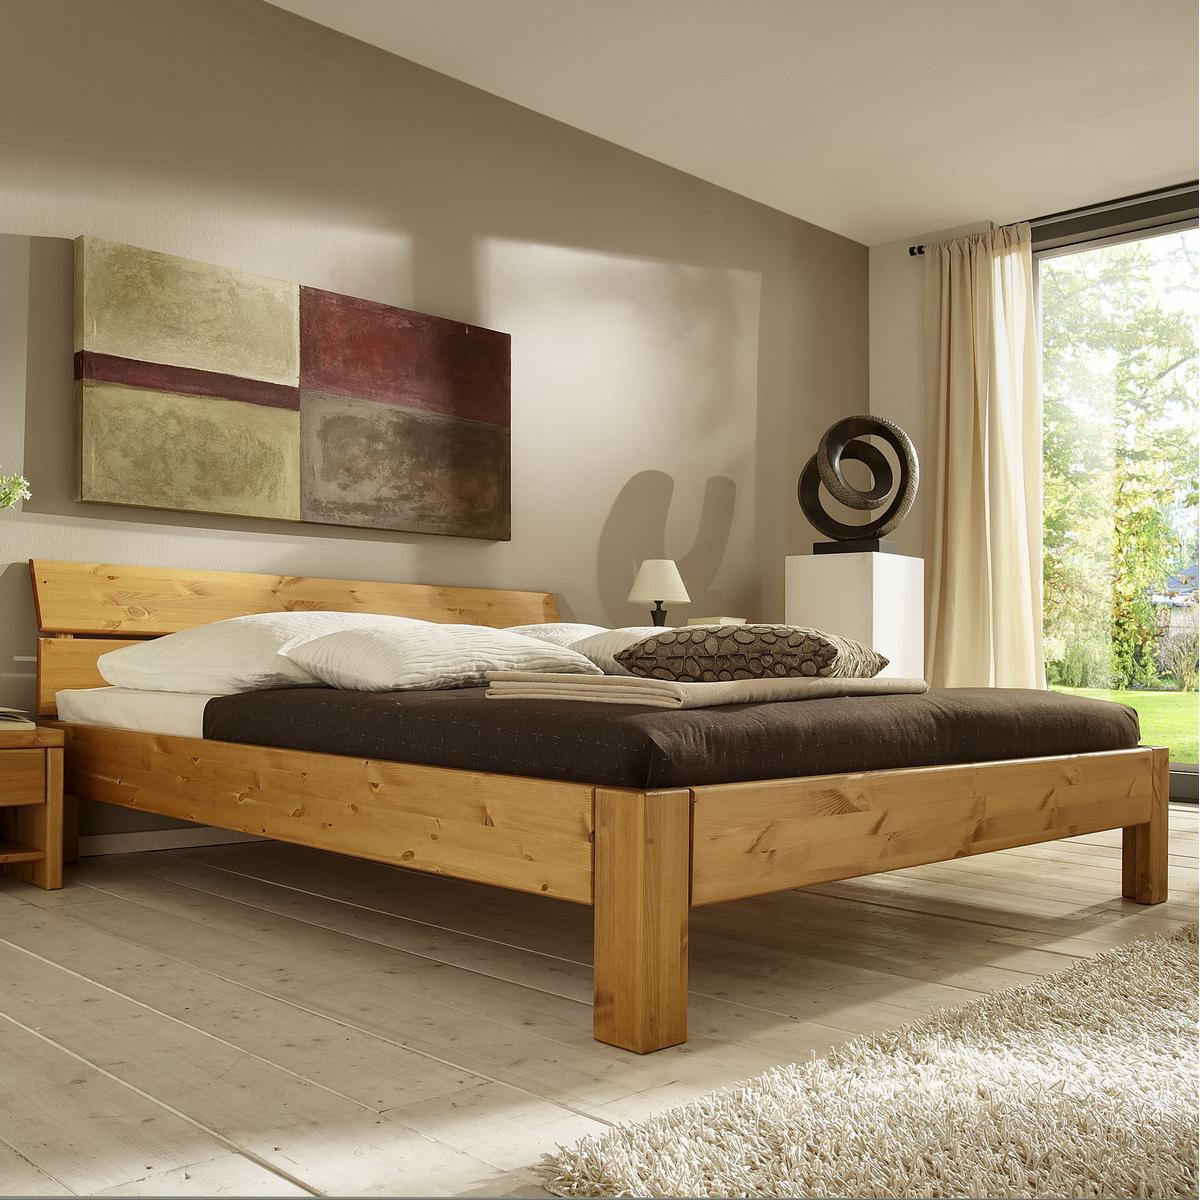 massivholz bett 180 200 holzbett mit bettkasten kiefer massiv weiss bett massivholz weiss 180x200. Black Bedroom Furniture Sets. Home Design Ideas